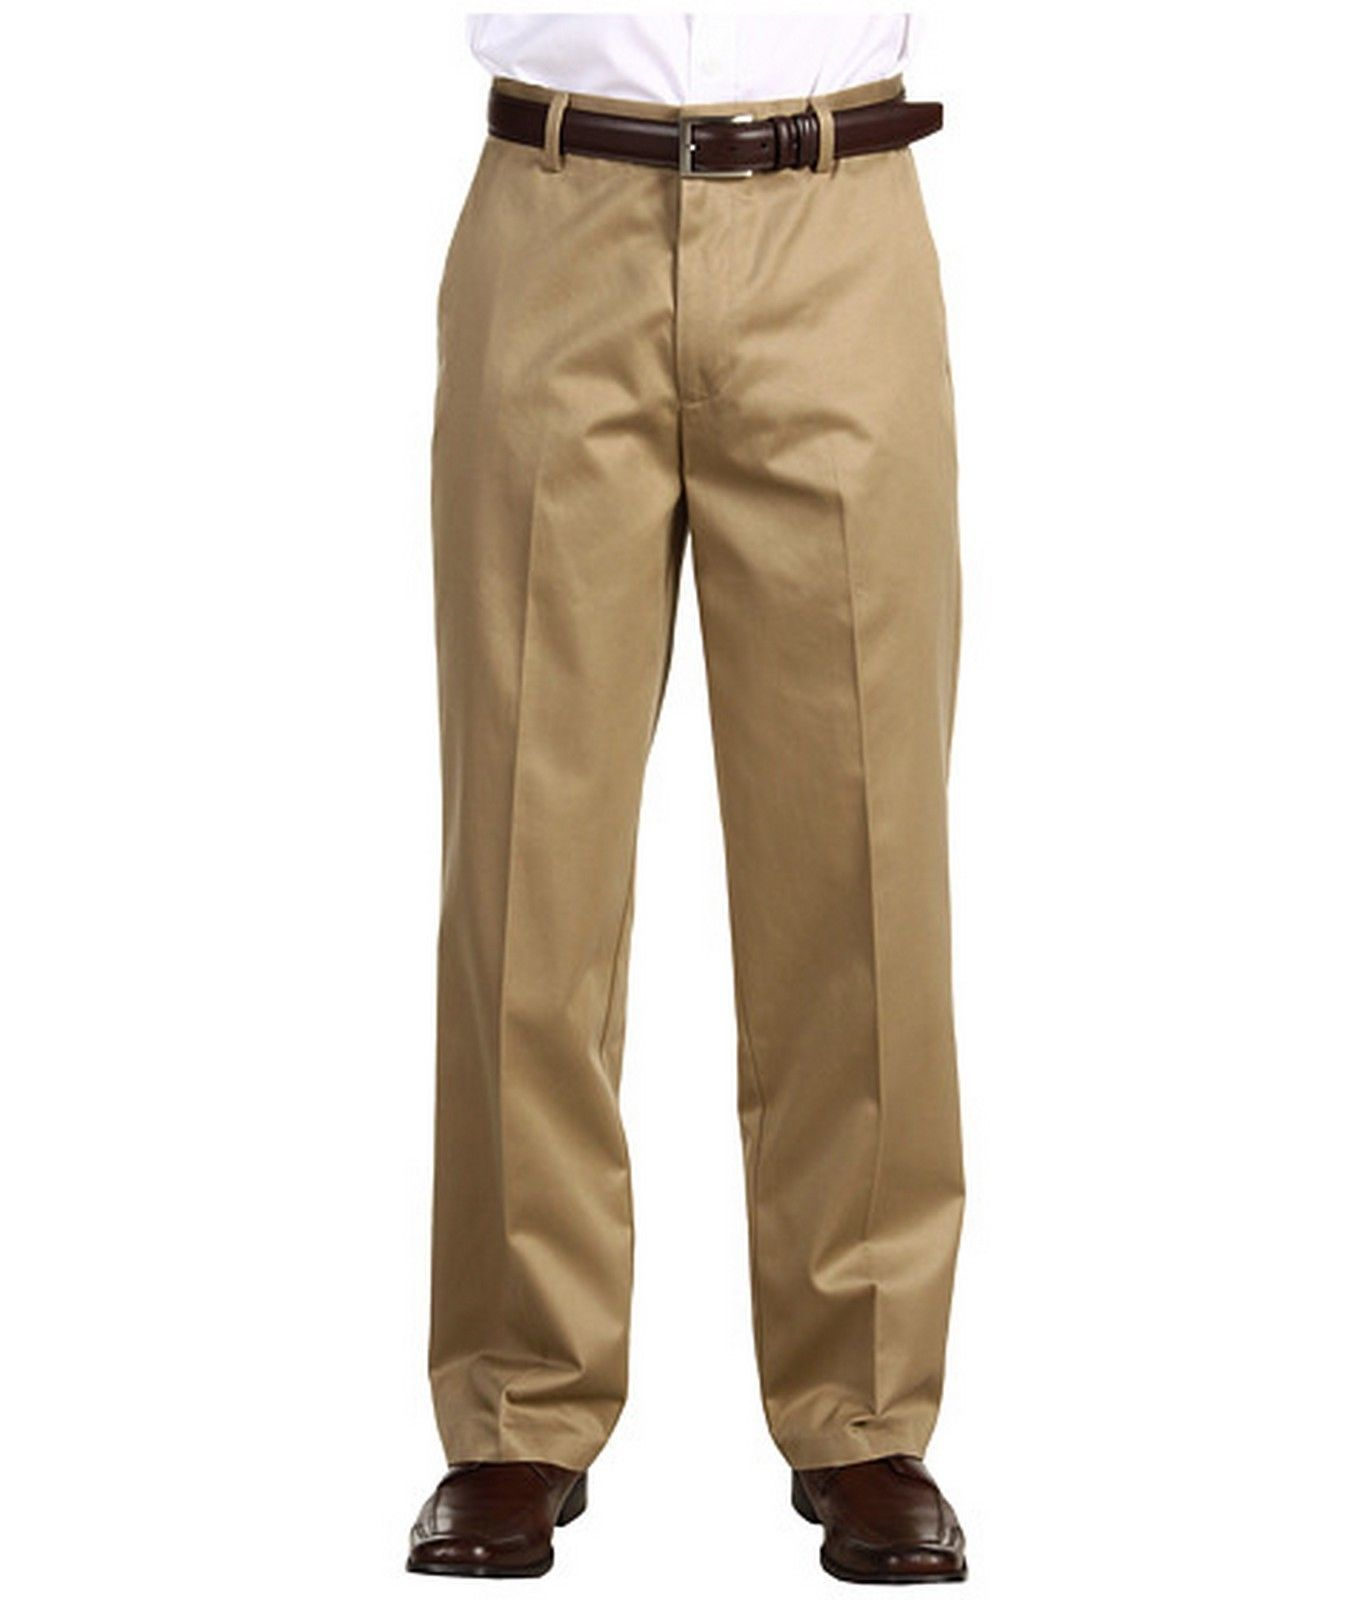 Dockers Big & Tall Easy Khaki Plissierte Hose